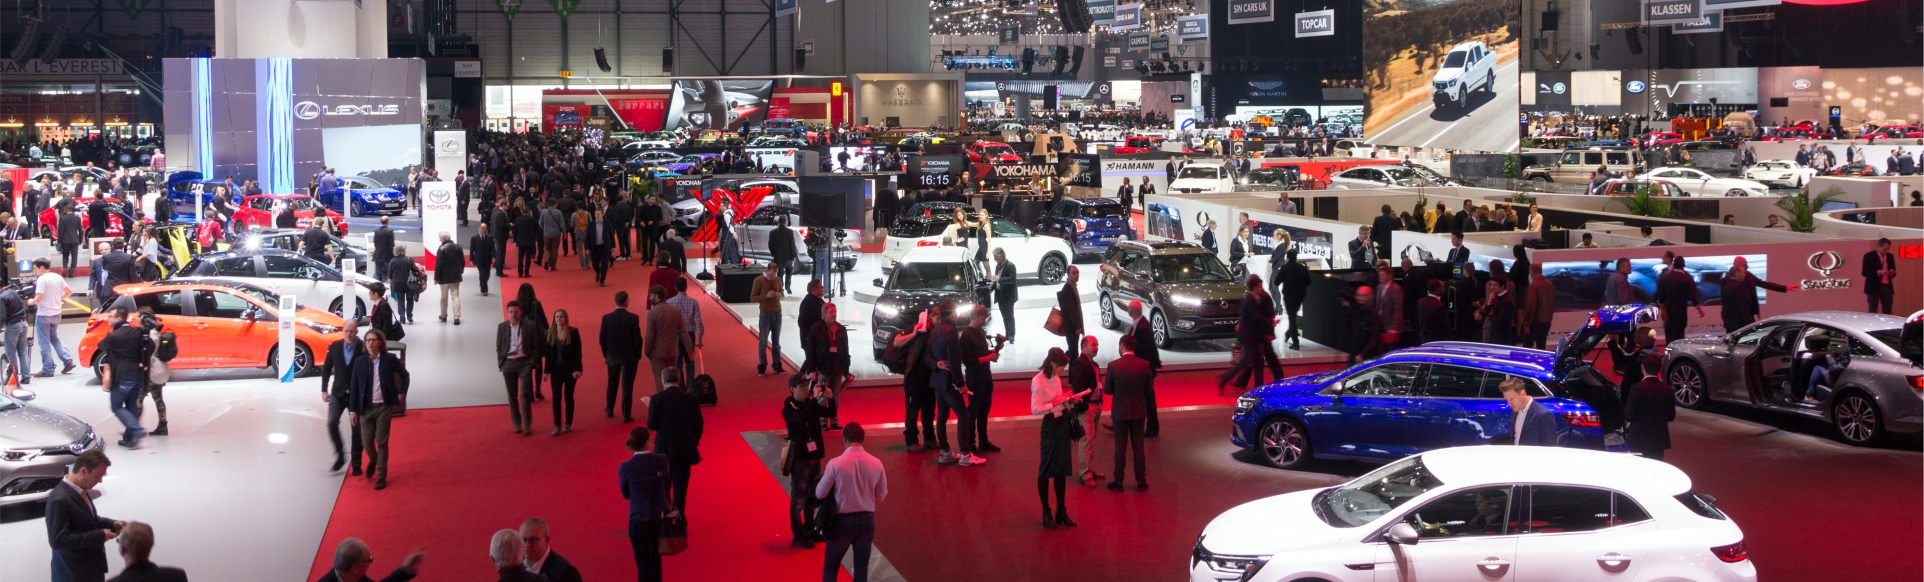 Convention center displaying automobiles with a large audience